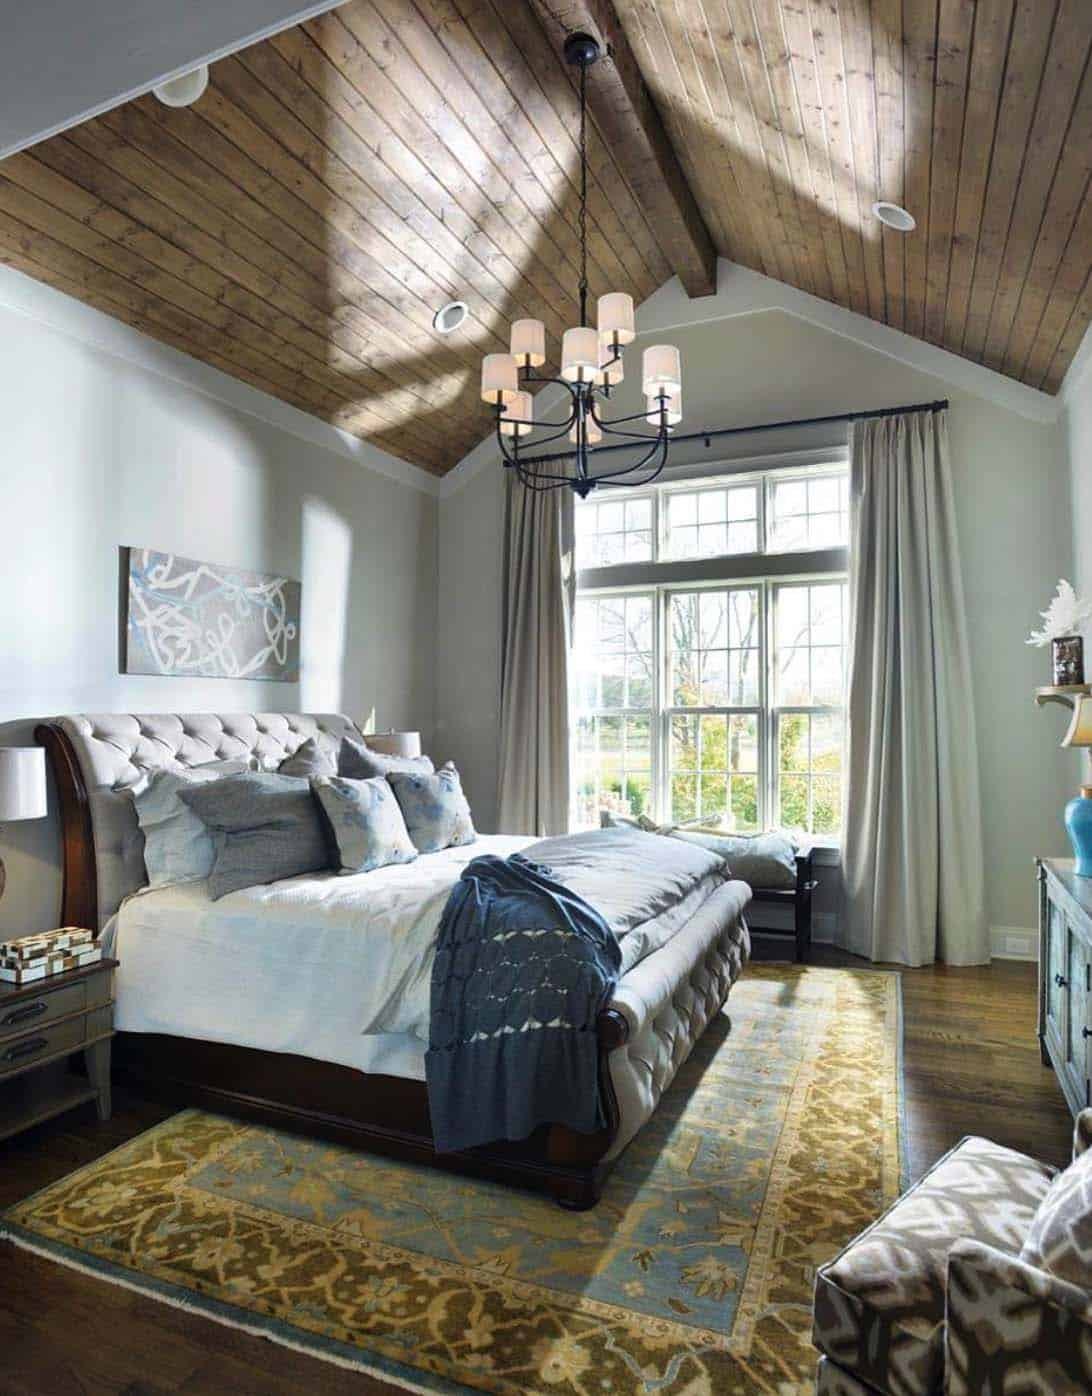 33 stunning master bedroom retreats with vaulted ceilings 16139 | master bedroom vaulted ceiling 25 1 kindesign